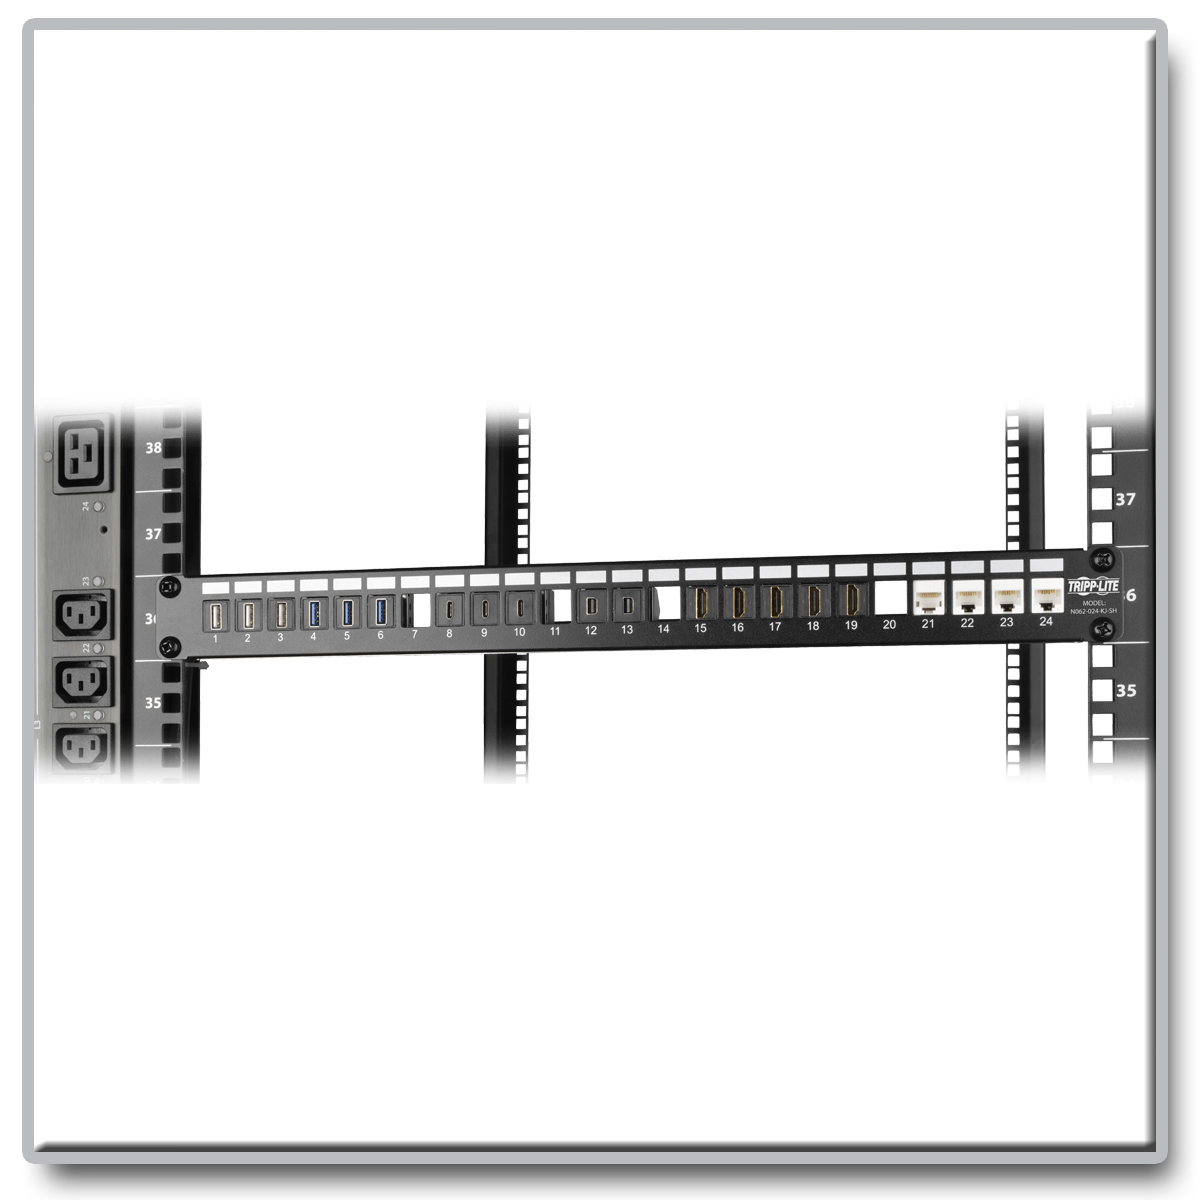 Tripp Lite 24 Port 1u Rack Mount Shielded Blank Keystone Multimedia Wall Ethernet Jack Wiring Diagram Also Neat Patch Cable Simplifies Management And Works With A Wide Variety Of Cabling